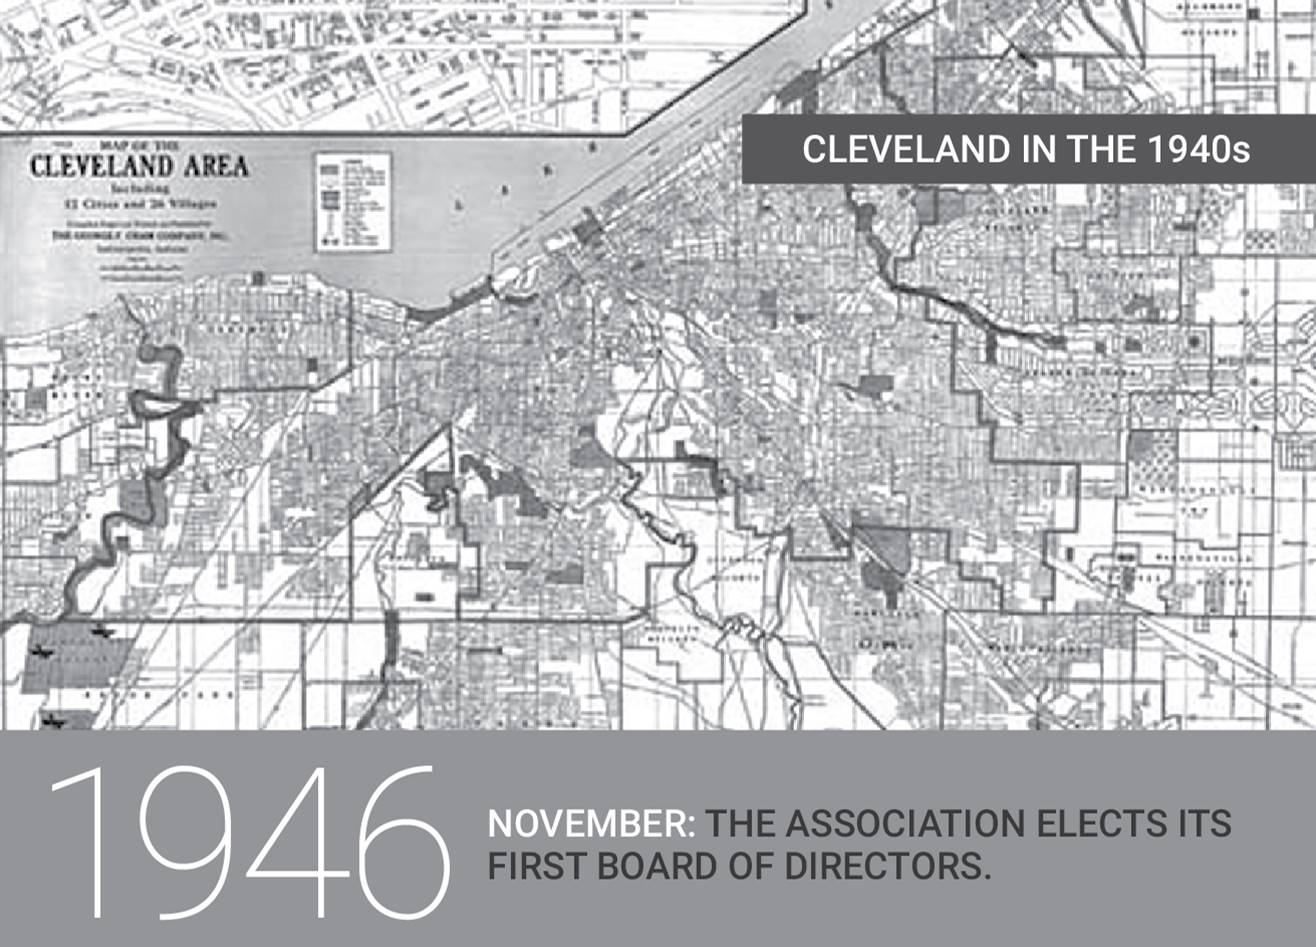 History-1946-Association-Elects-First-BOD